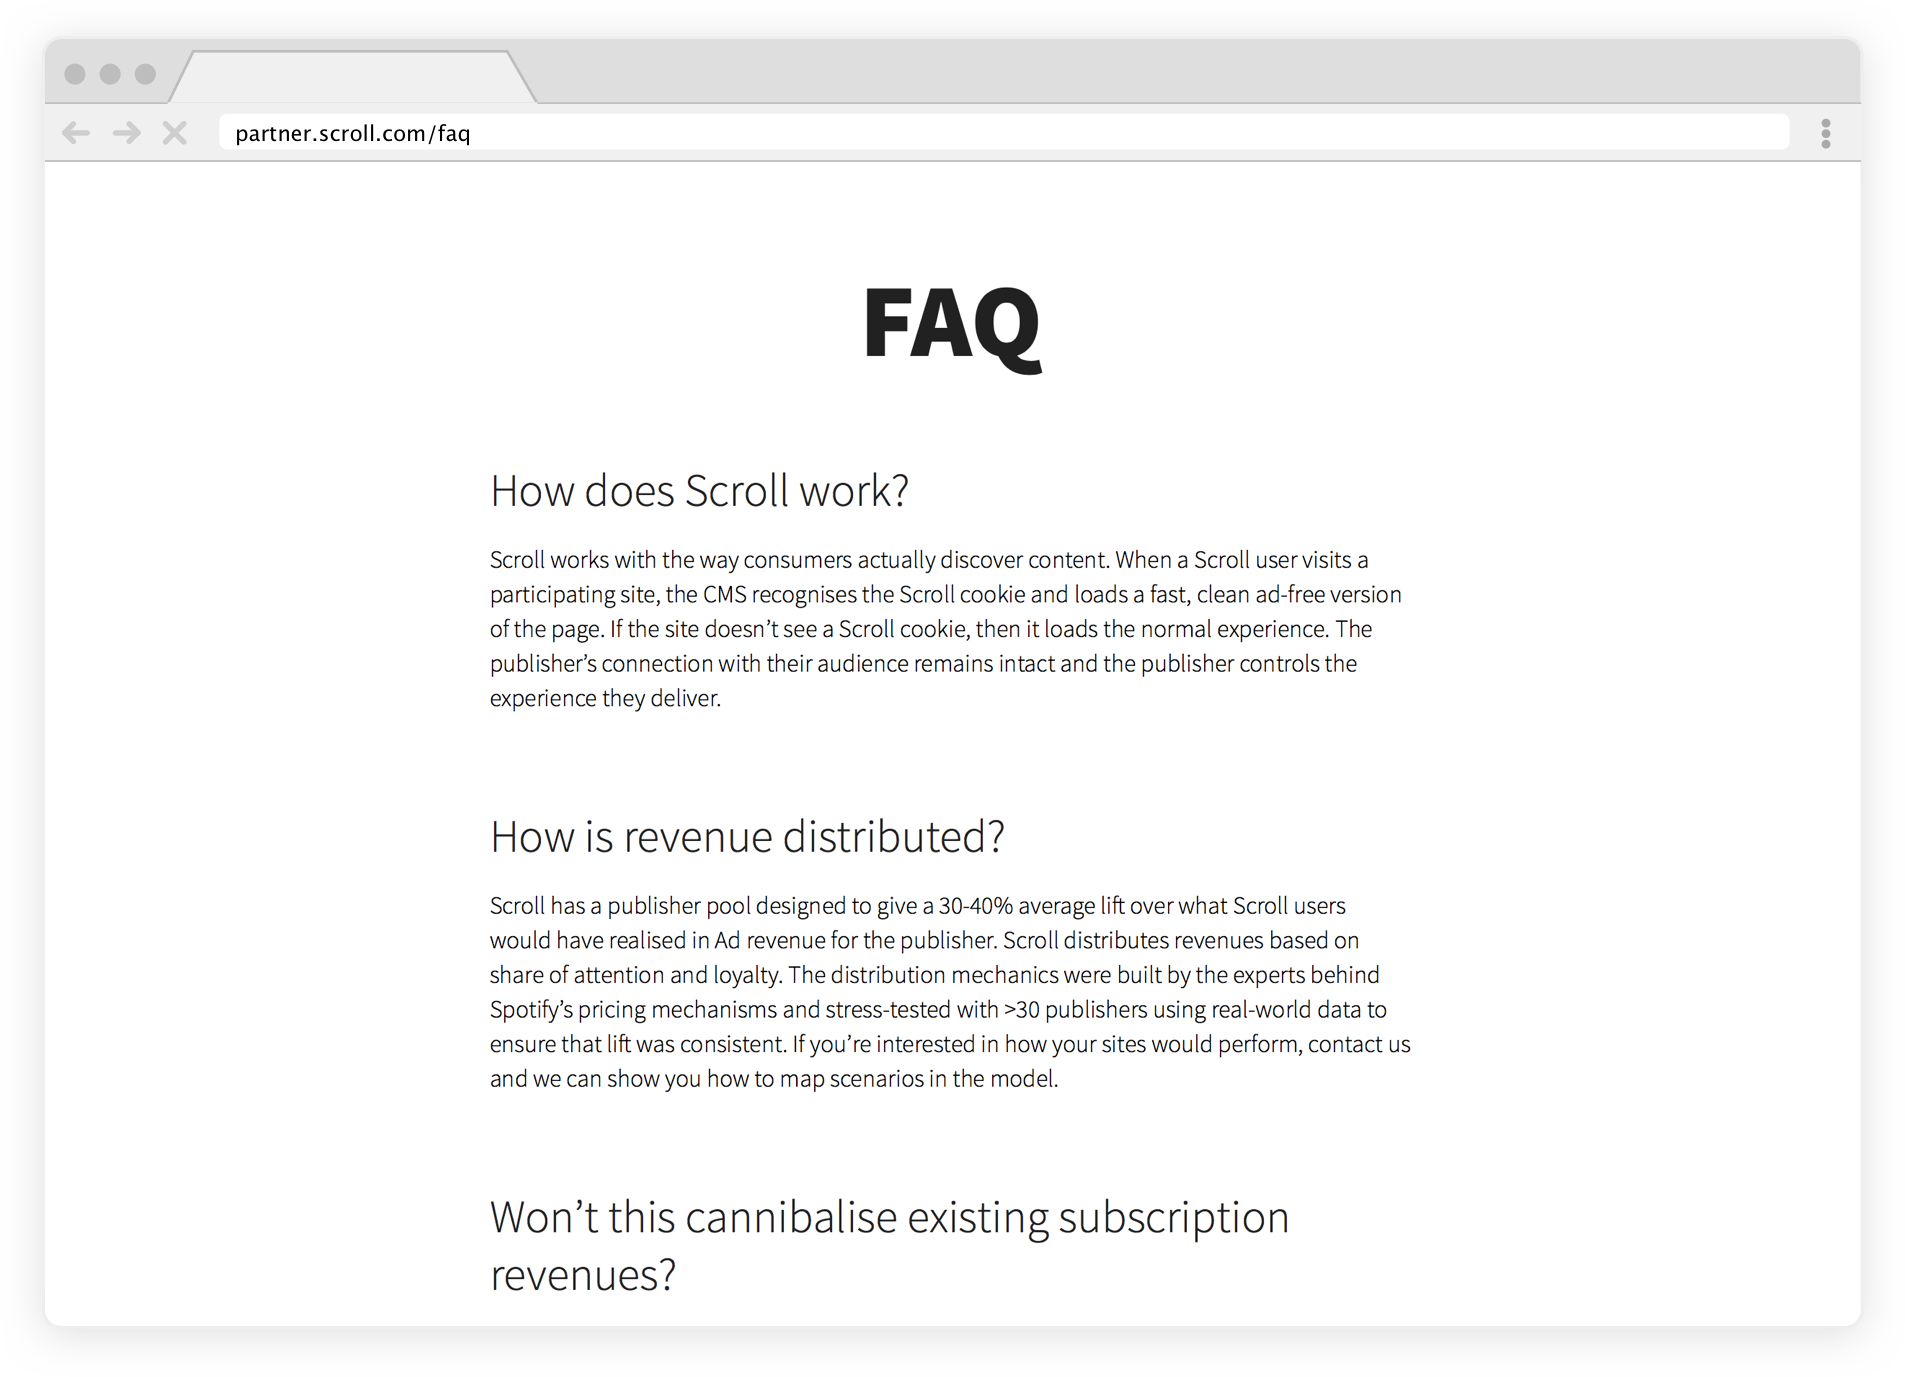 Sample of some of Scroll's FAQ page, viewable at above link.